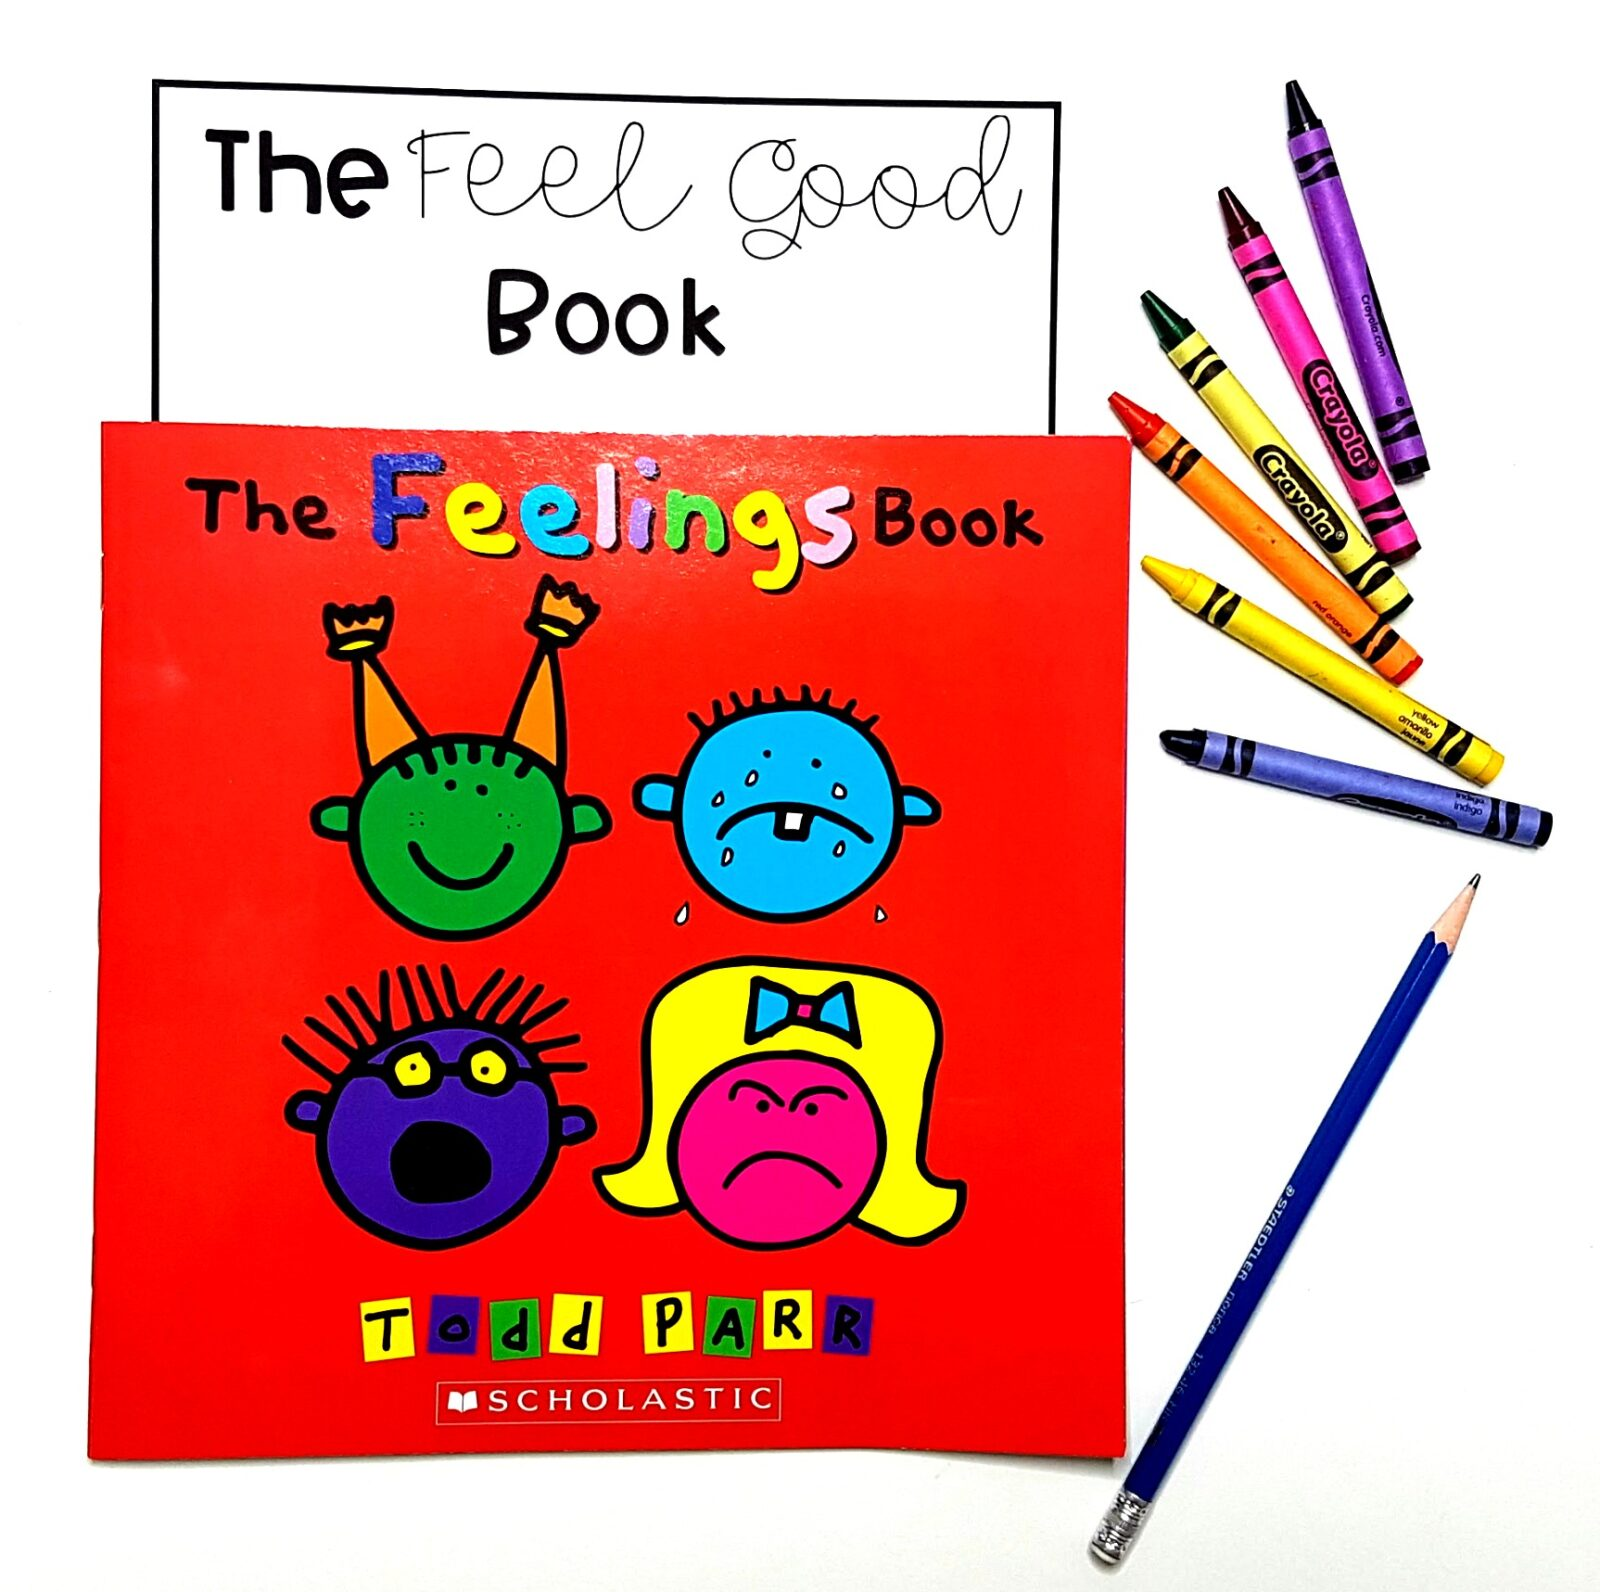 15 emotions books and videos for the classroom to teach kids to understand their emotions and express them appropriately. Teachers can use these emotions books and videos during social-emotional learning lessons and activities with kids. #booksaboutfeelings #socialemotionallearning #charactereducation #booksforkids #videosforkids #emotionsactivities